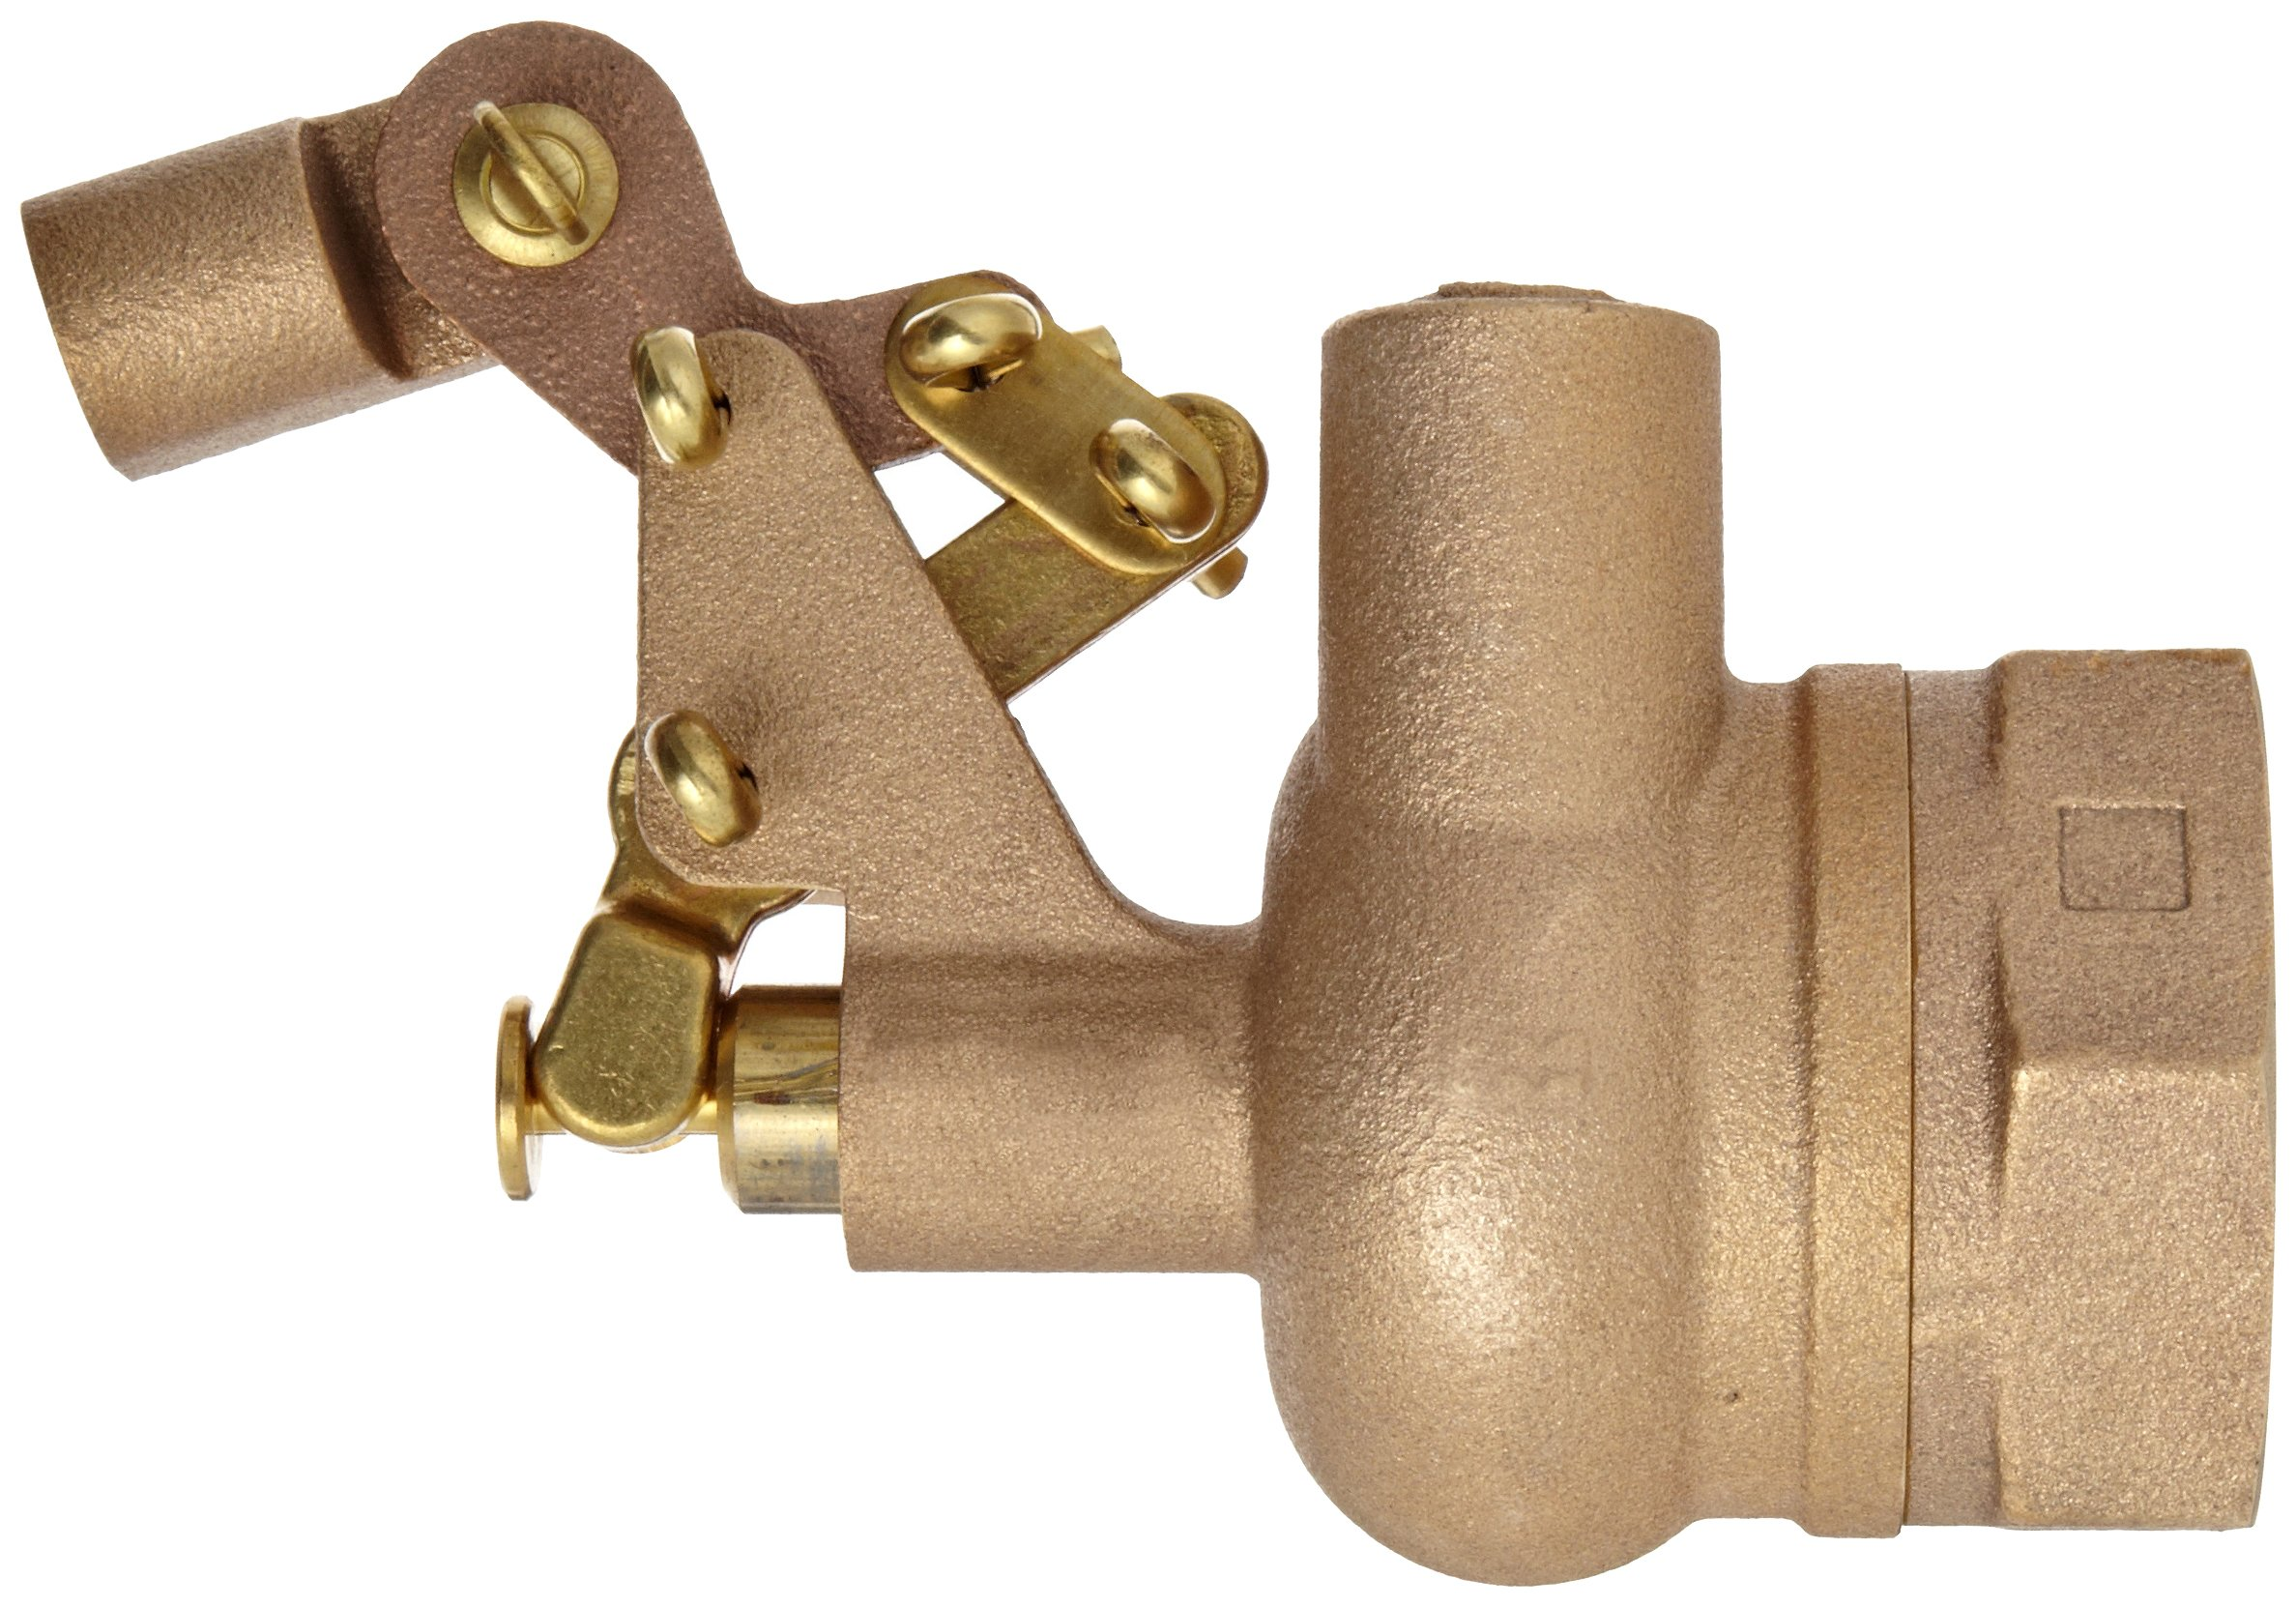 Robert Manufacturing RF610 Series Bob Red Brass Float Valve with Compound Operating Lever, 1-1/2'' NPT Female Inlet x Free Flow Outlet, 180 gpm at 85 psi Pressure by Robert Manufacturing (Image #2)